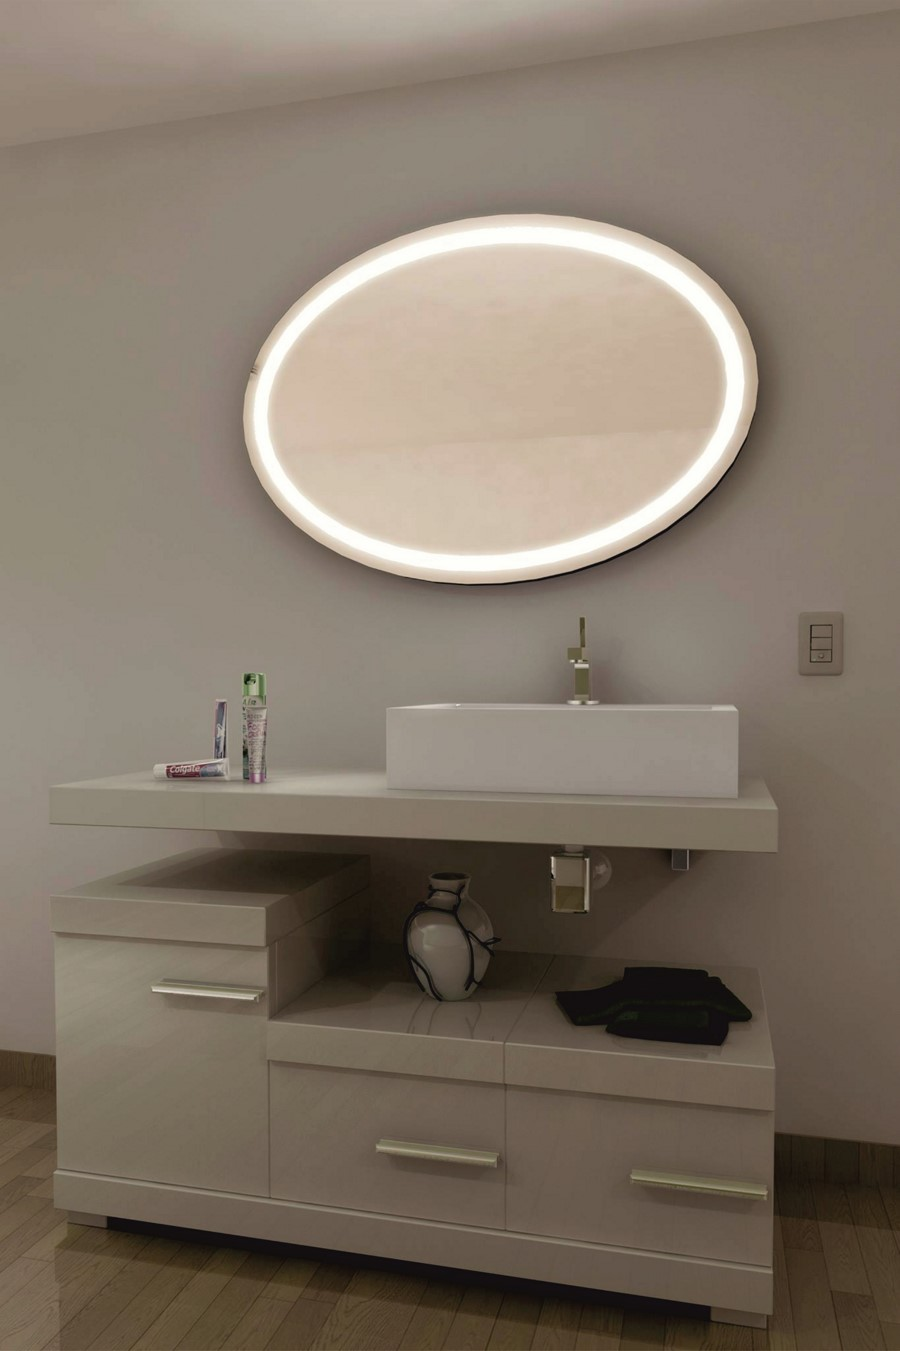 espejo con luz led integrada mod 112 gldesign